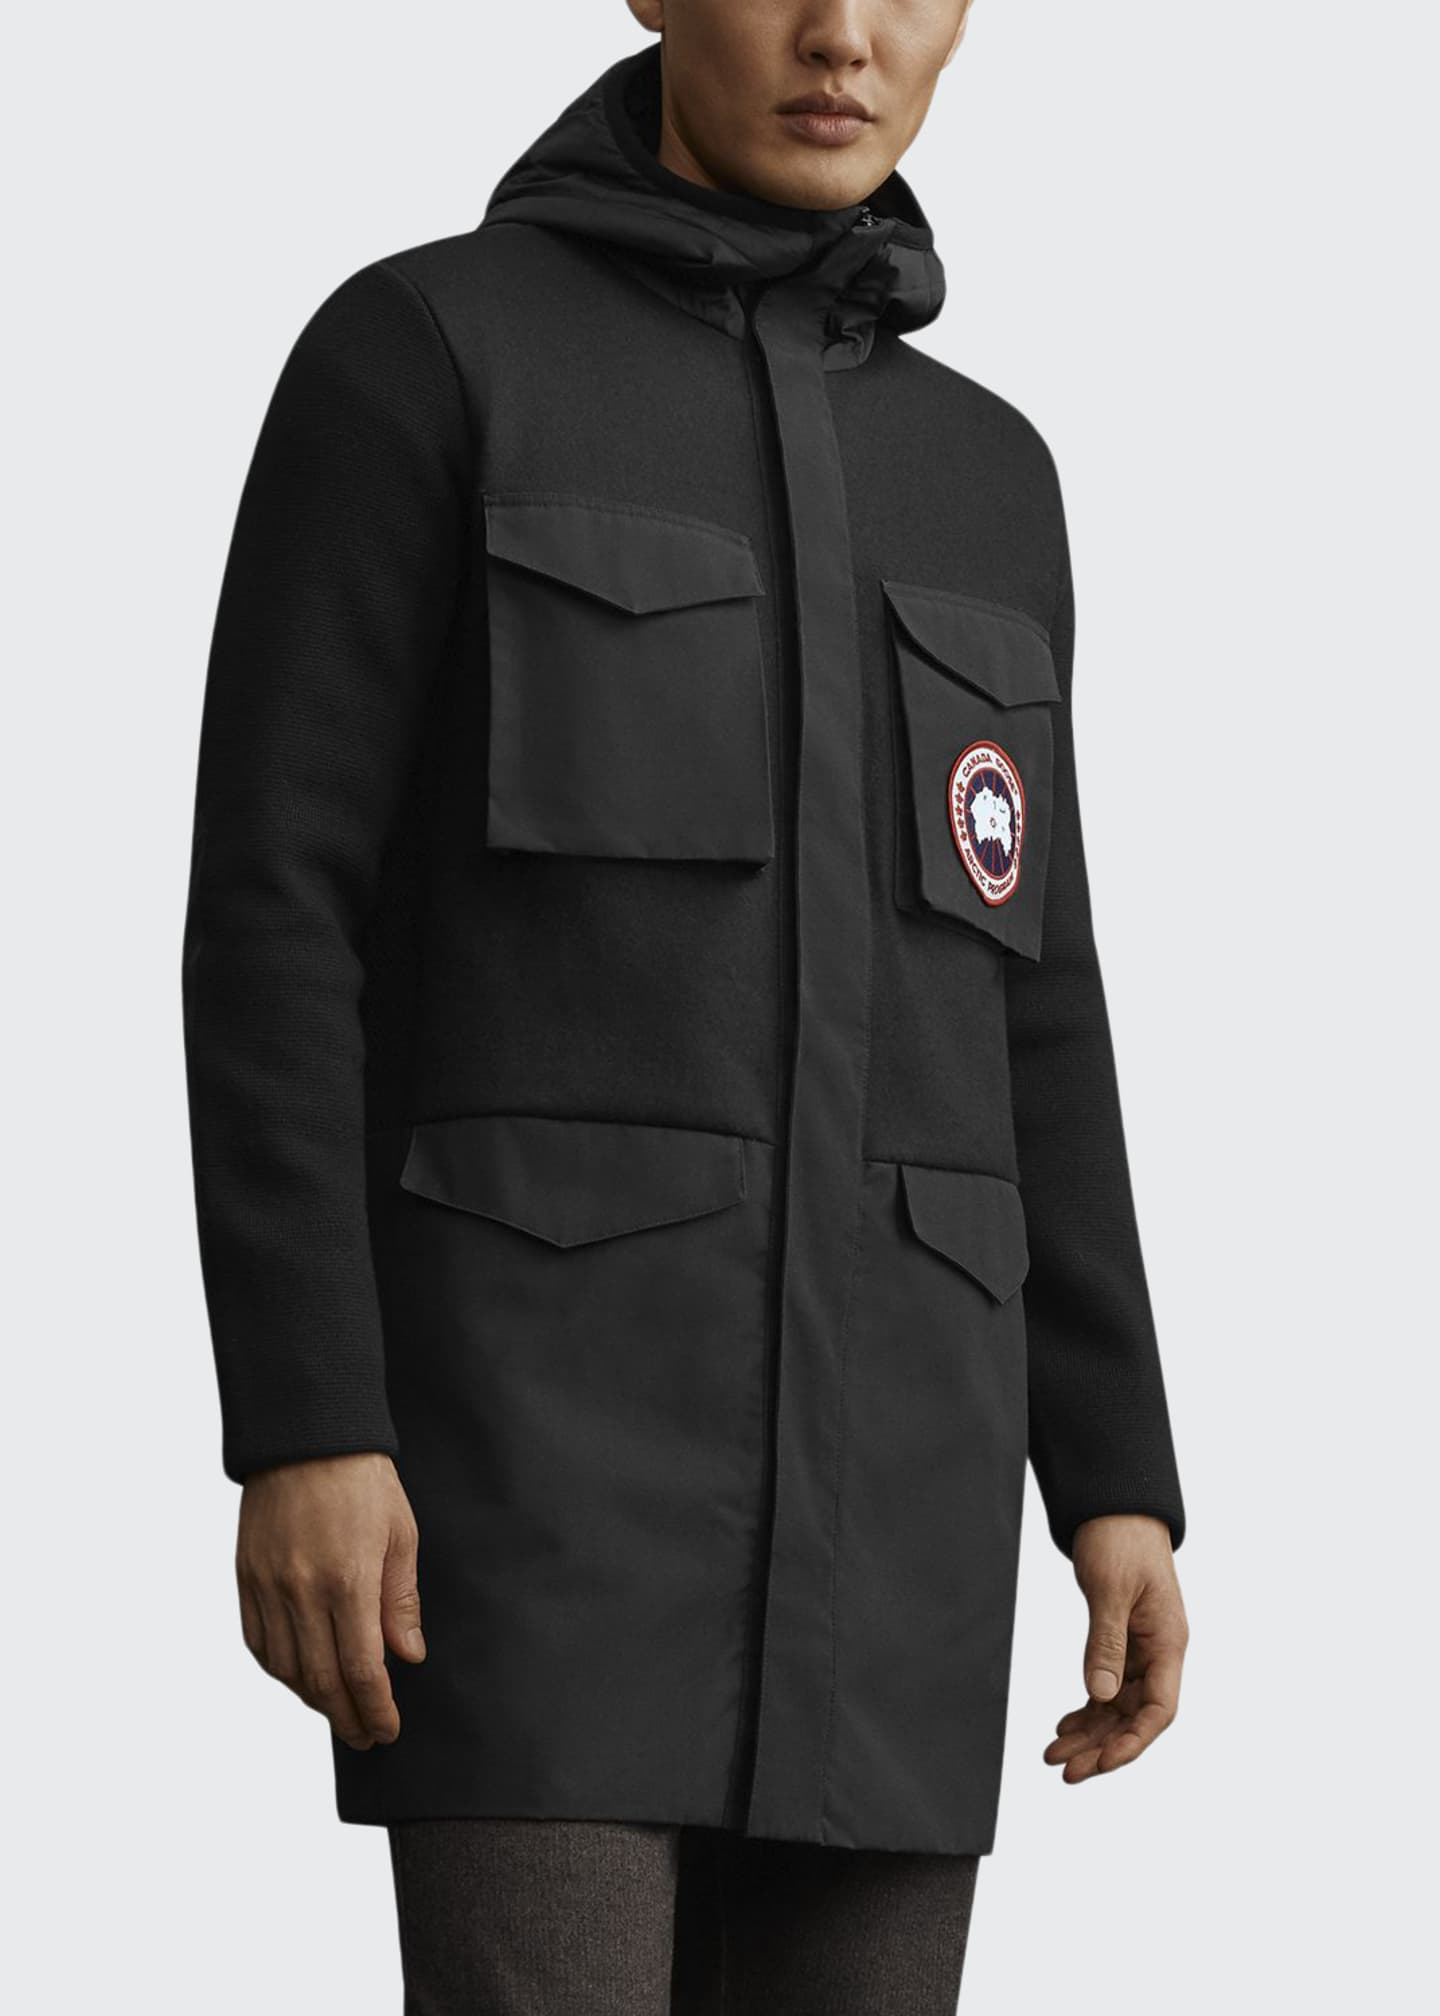 Canada Goose Men's Dunfield Hooded Knit Jacket